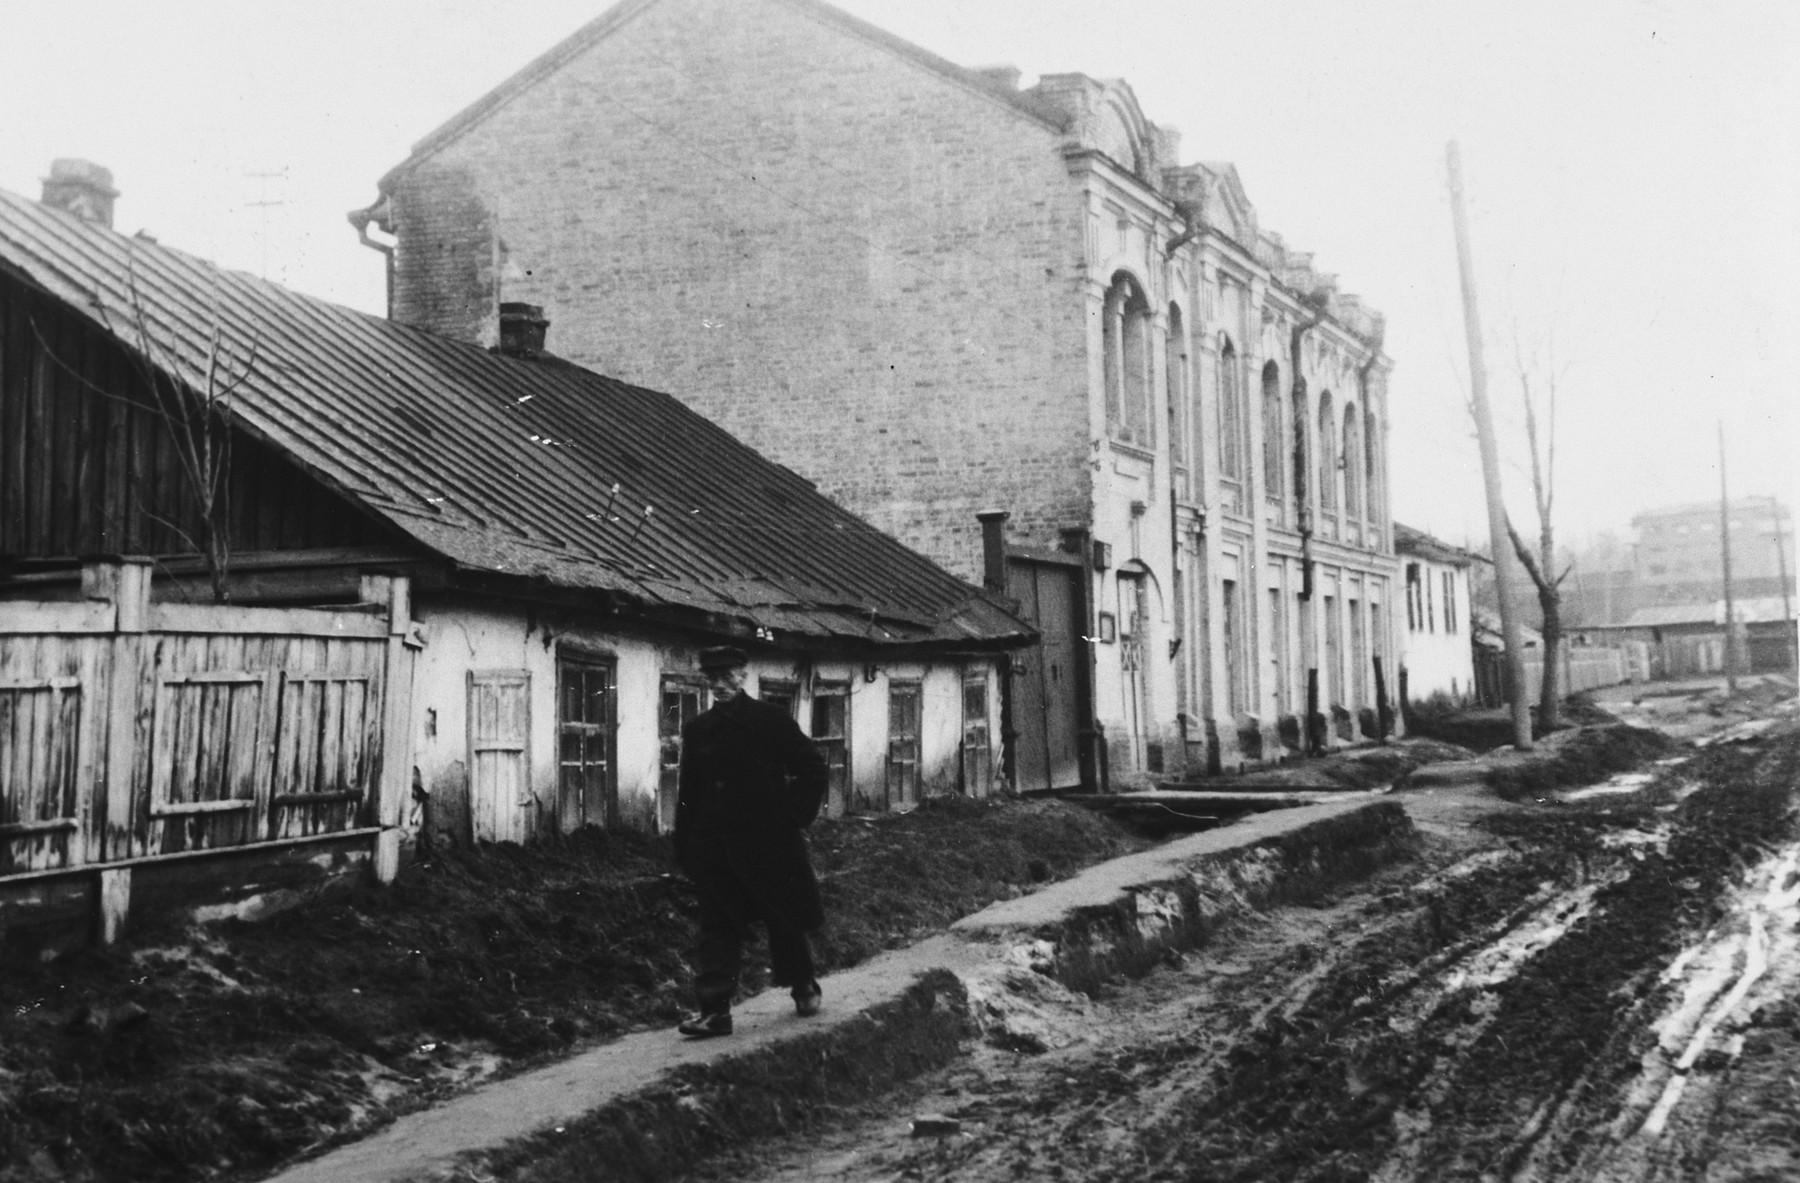 "A man walks down a muddy street of an unidentified town under German occupation.  The caption of the SS-Archiv says Haupteinfahrtstrasse nach der Stadt (...) Okt. 1941"" (main entrance street to the city (...) Oct. 1941)."